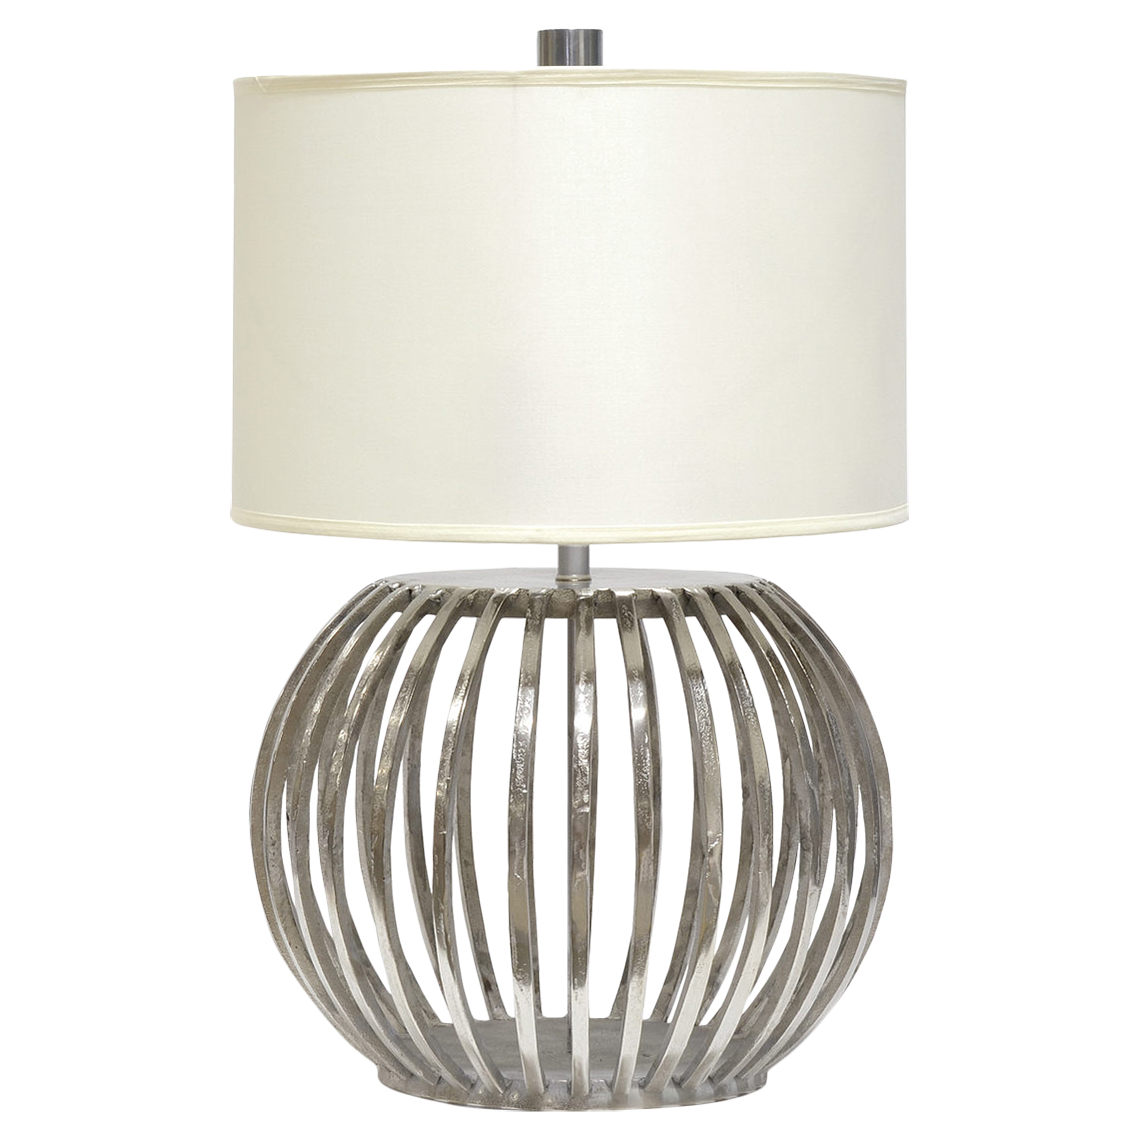 Lonnie Modern Classic Silver Orb Table Lamp